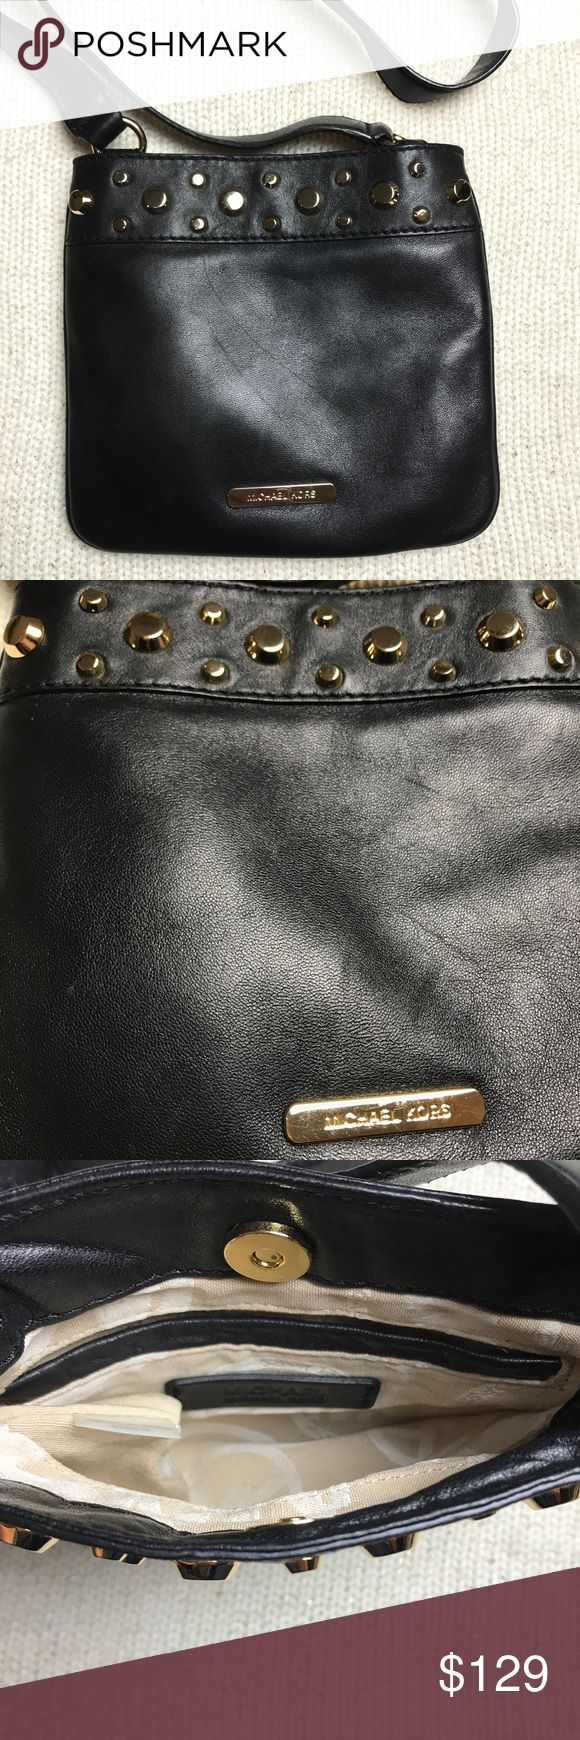 Michael Kors Black Leather Crossbody Bag Michael Kors Black Leather Crossbody Bag. Excellent condition besides the one slight mark as shown in the picture in front of bag.  Not noticeable until you shine a bright light. Michael Kors Bags Crossbody Bags